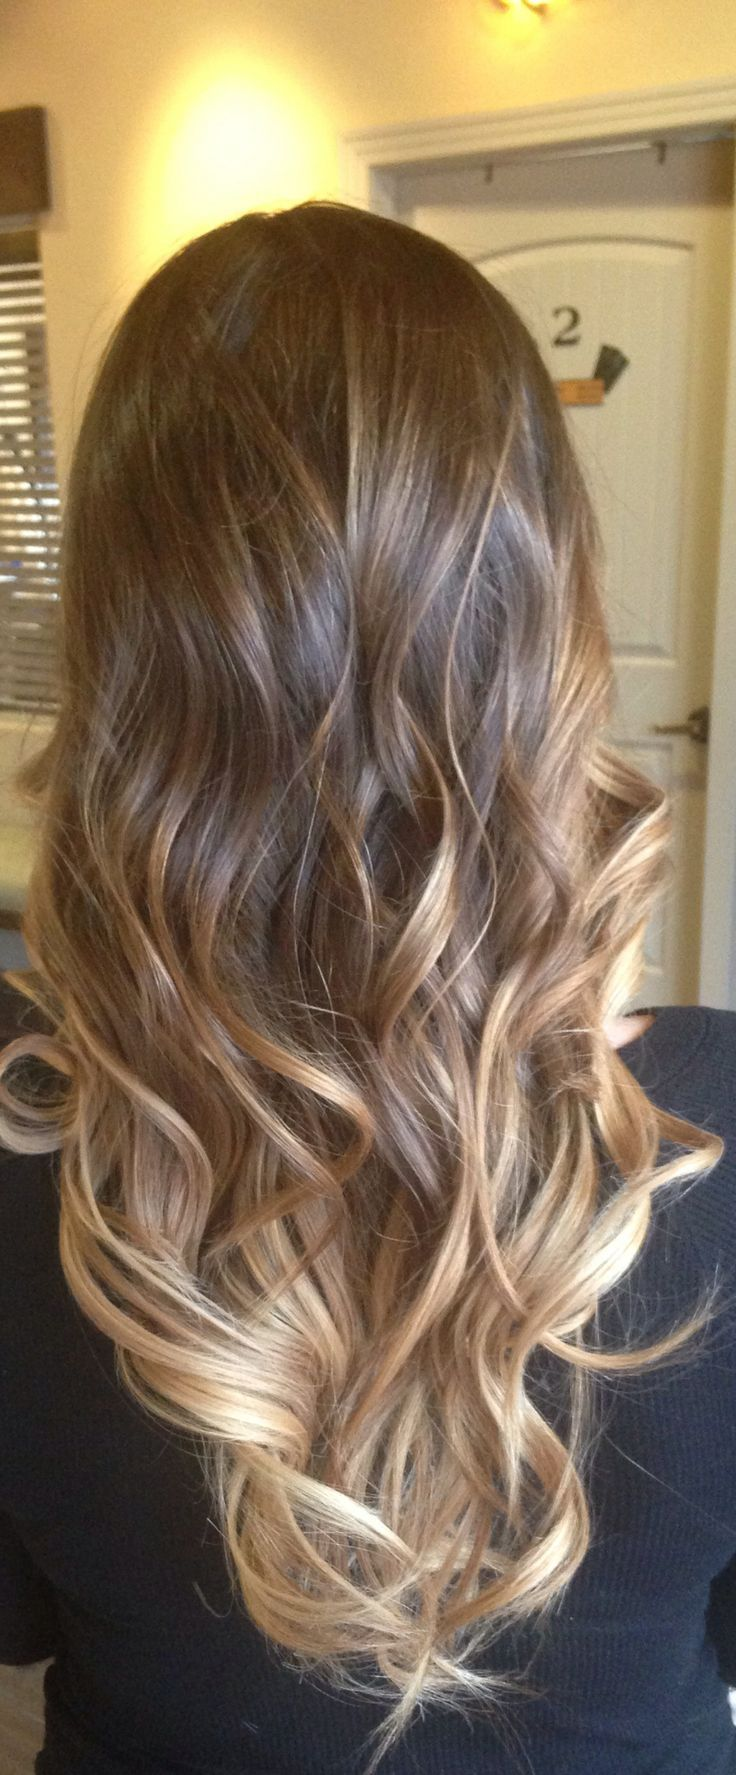 best haircuts images on pinterest hair ideas hair colors and